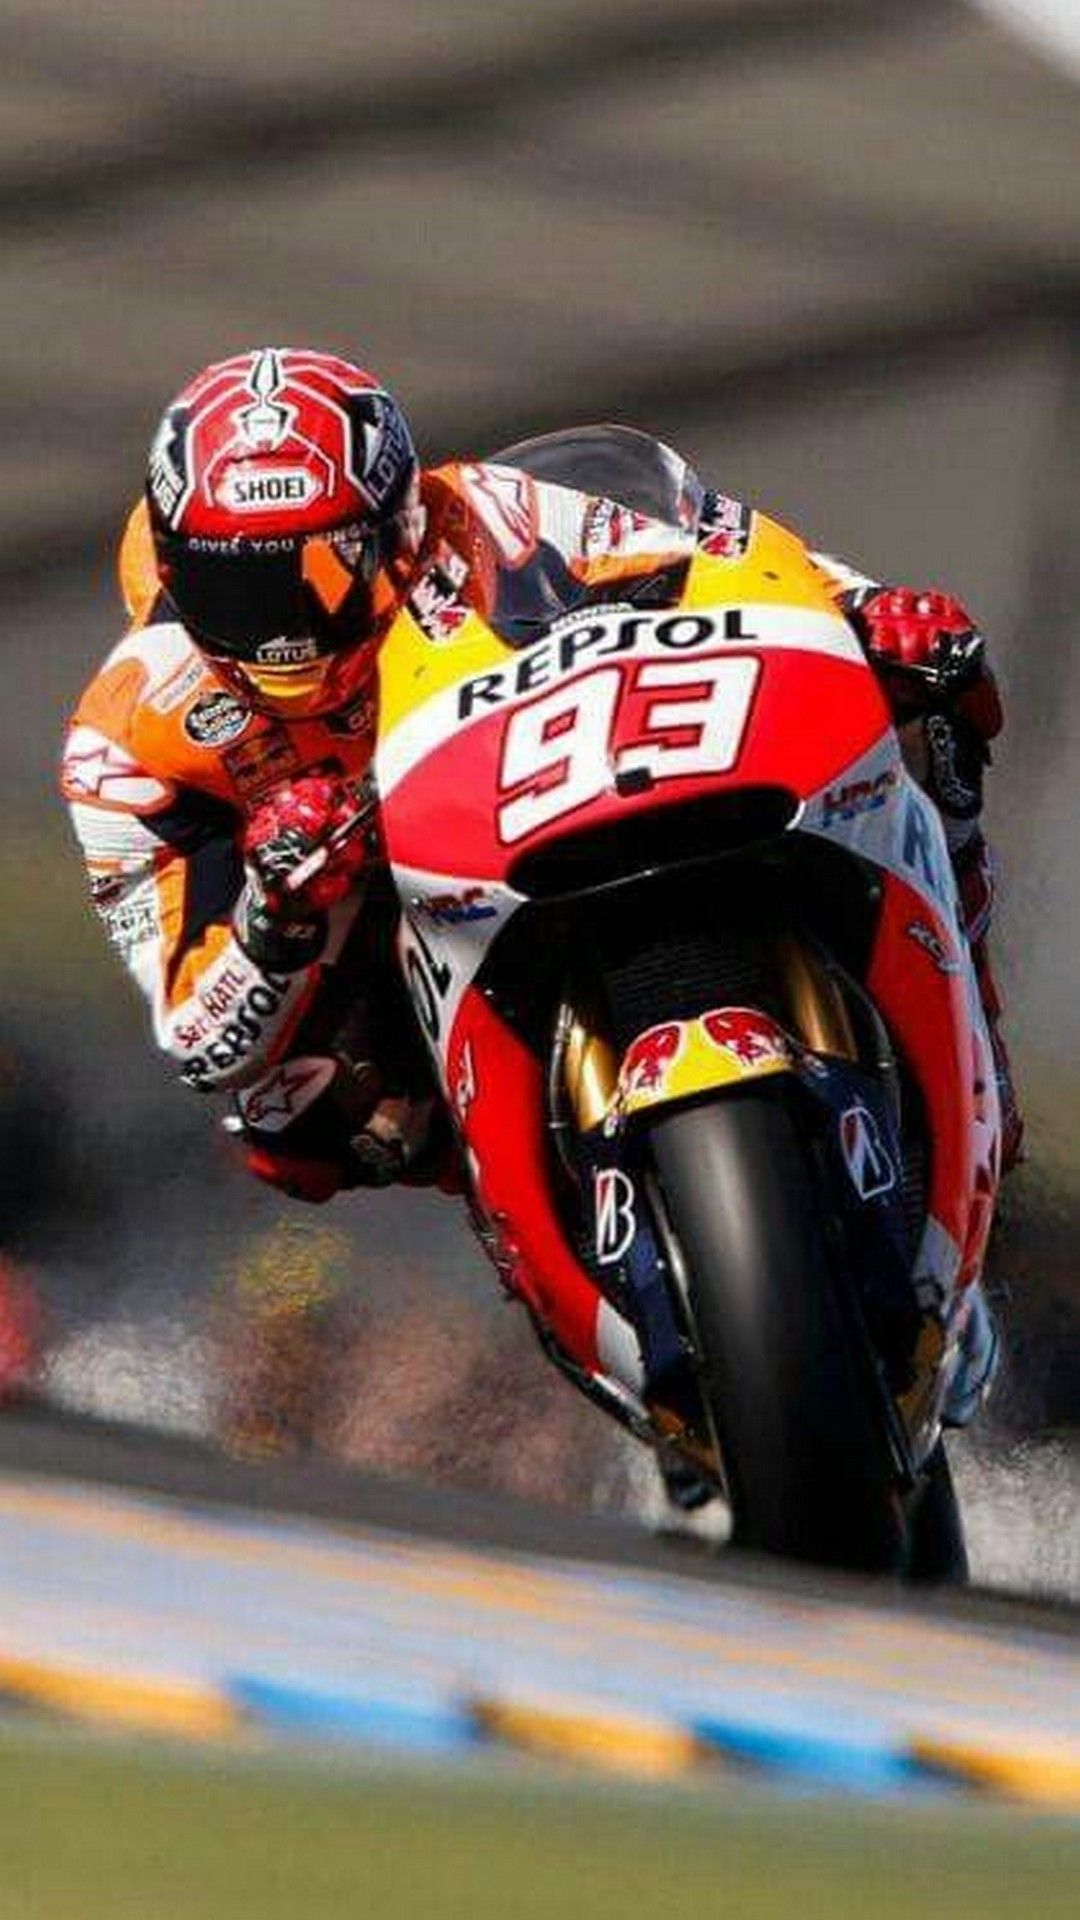 Wallpaper motogp cell phone